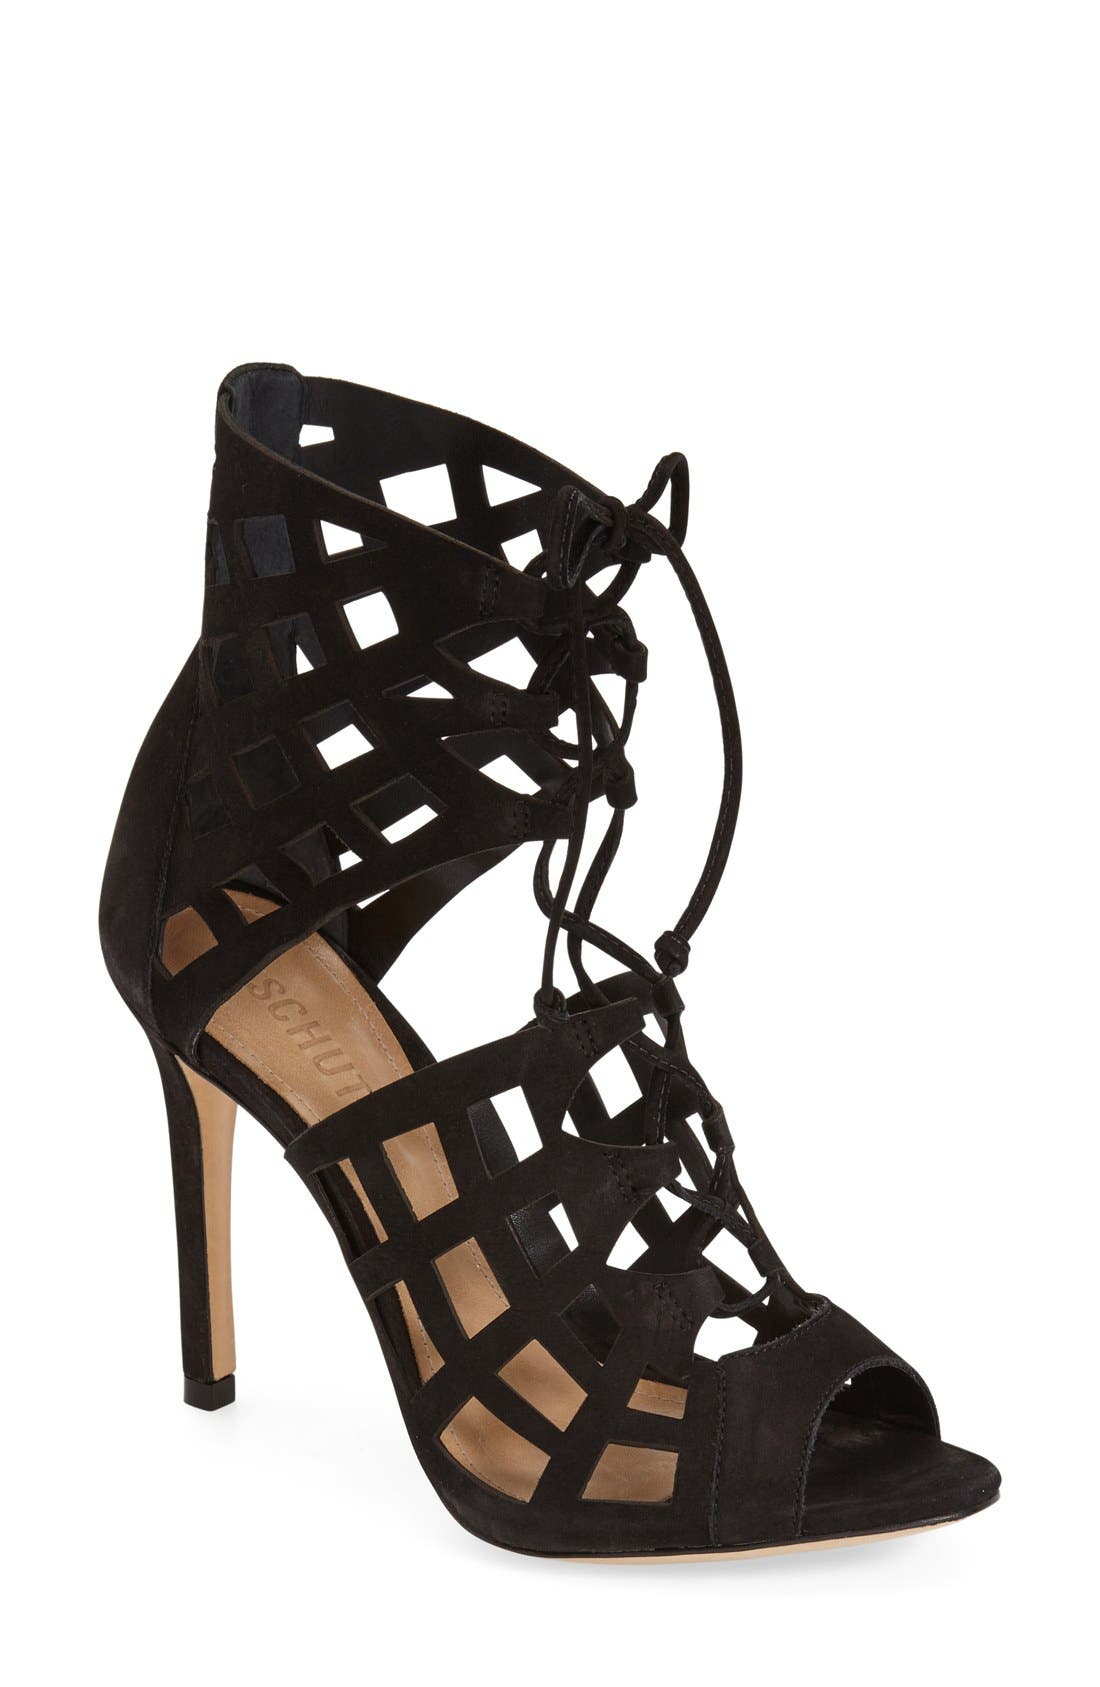 Alternate Image 1 Selected - Schutz 'Blake' Cutout Sandal (Women)